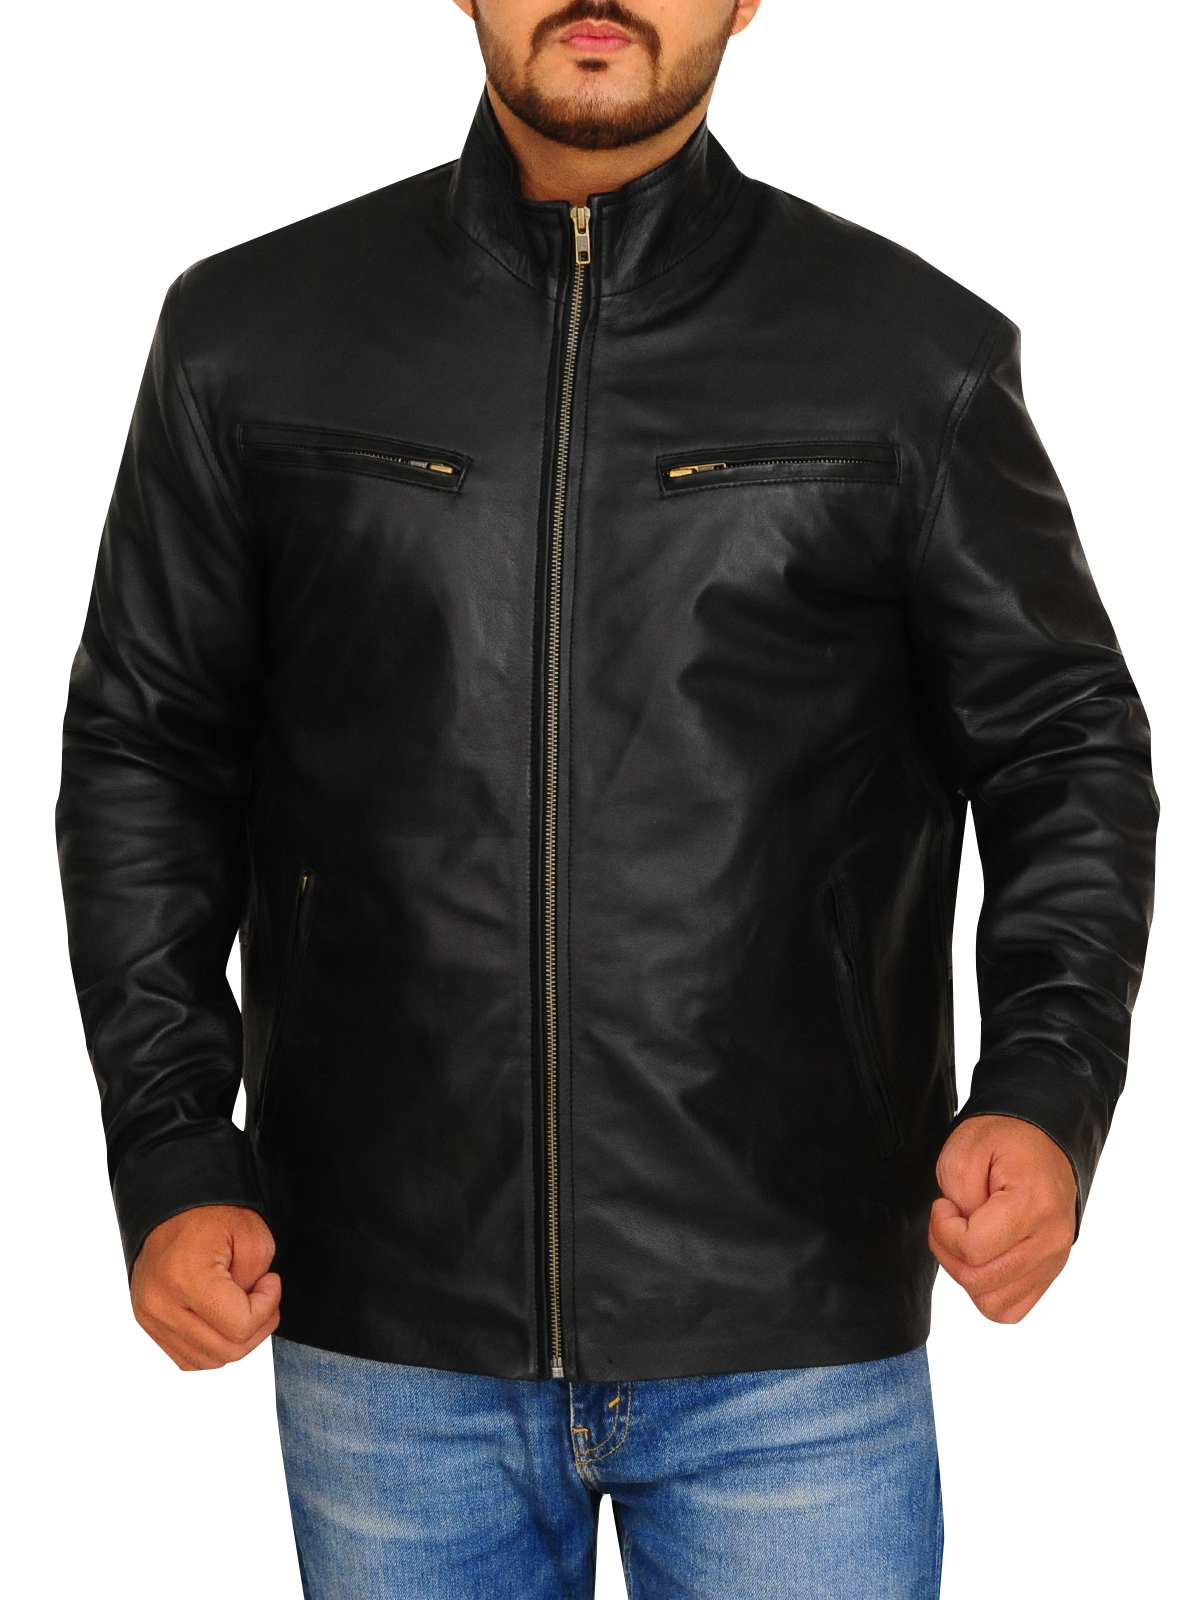 Fast-And-Furious-7-Leather-Jacket